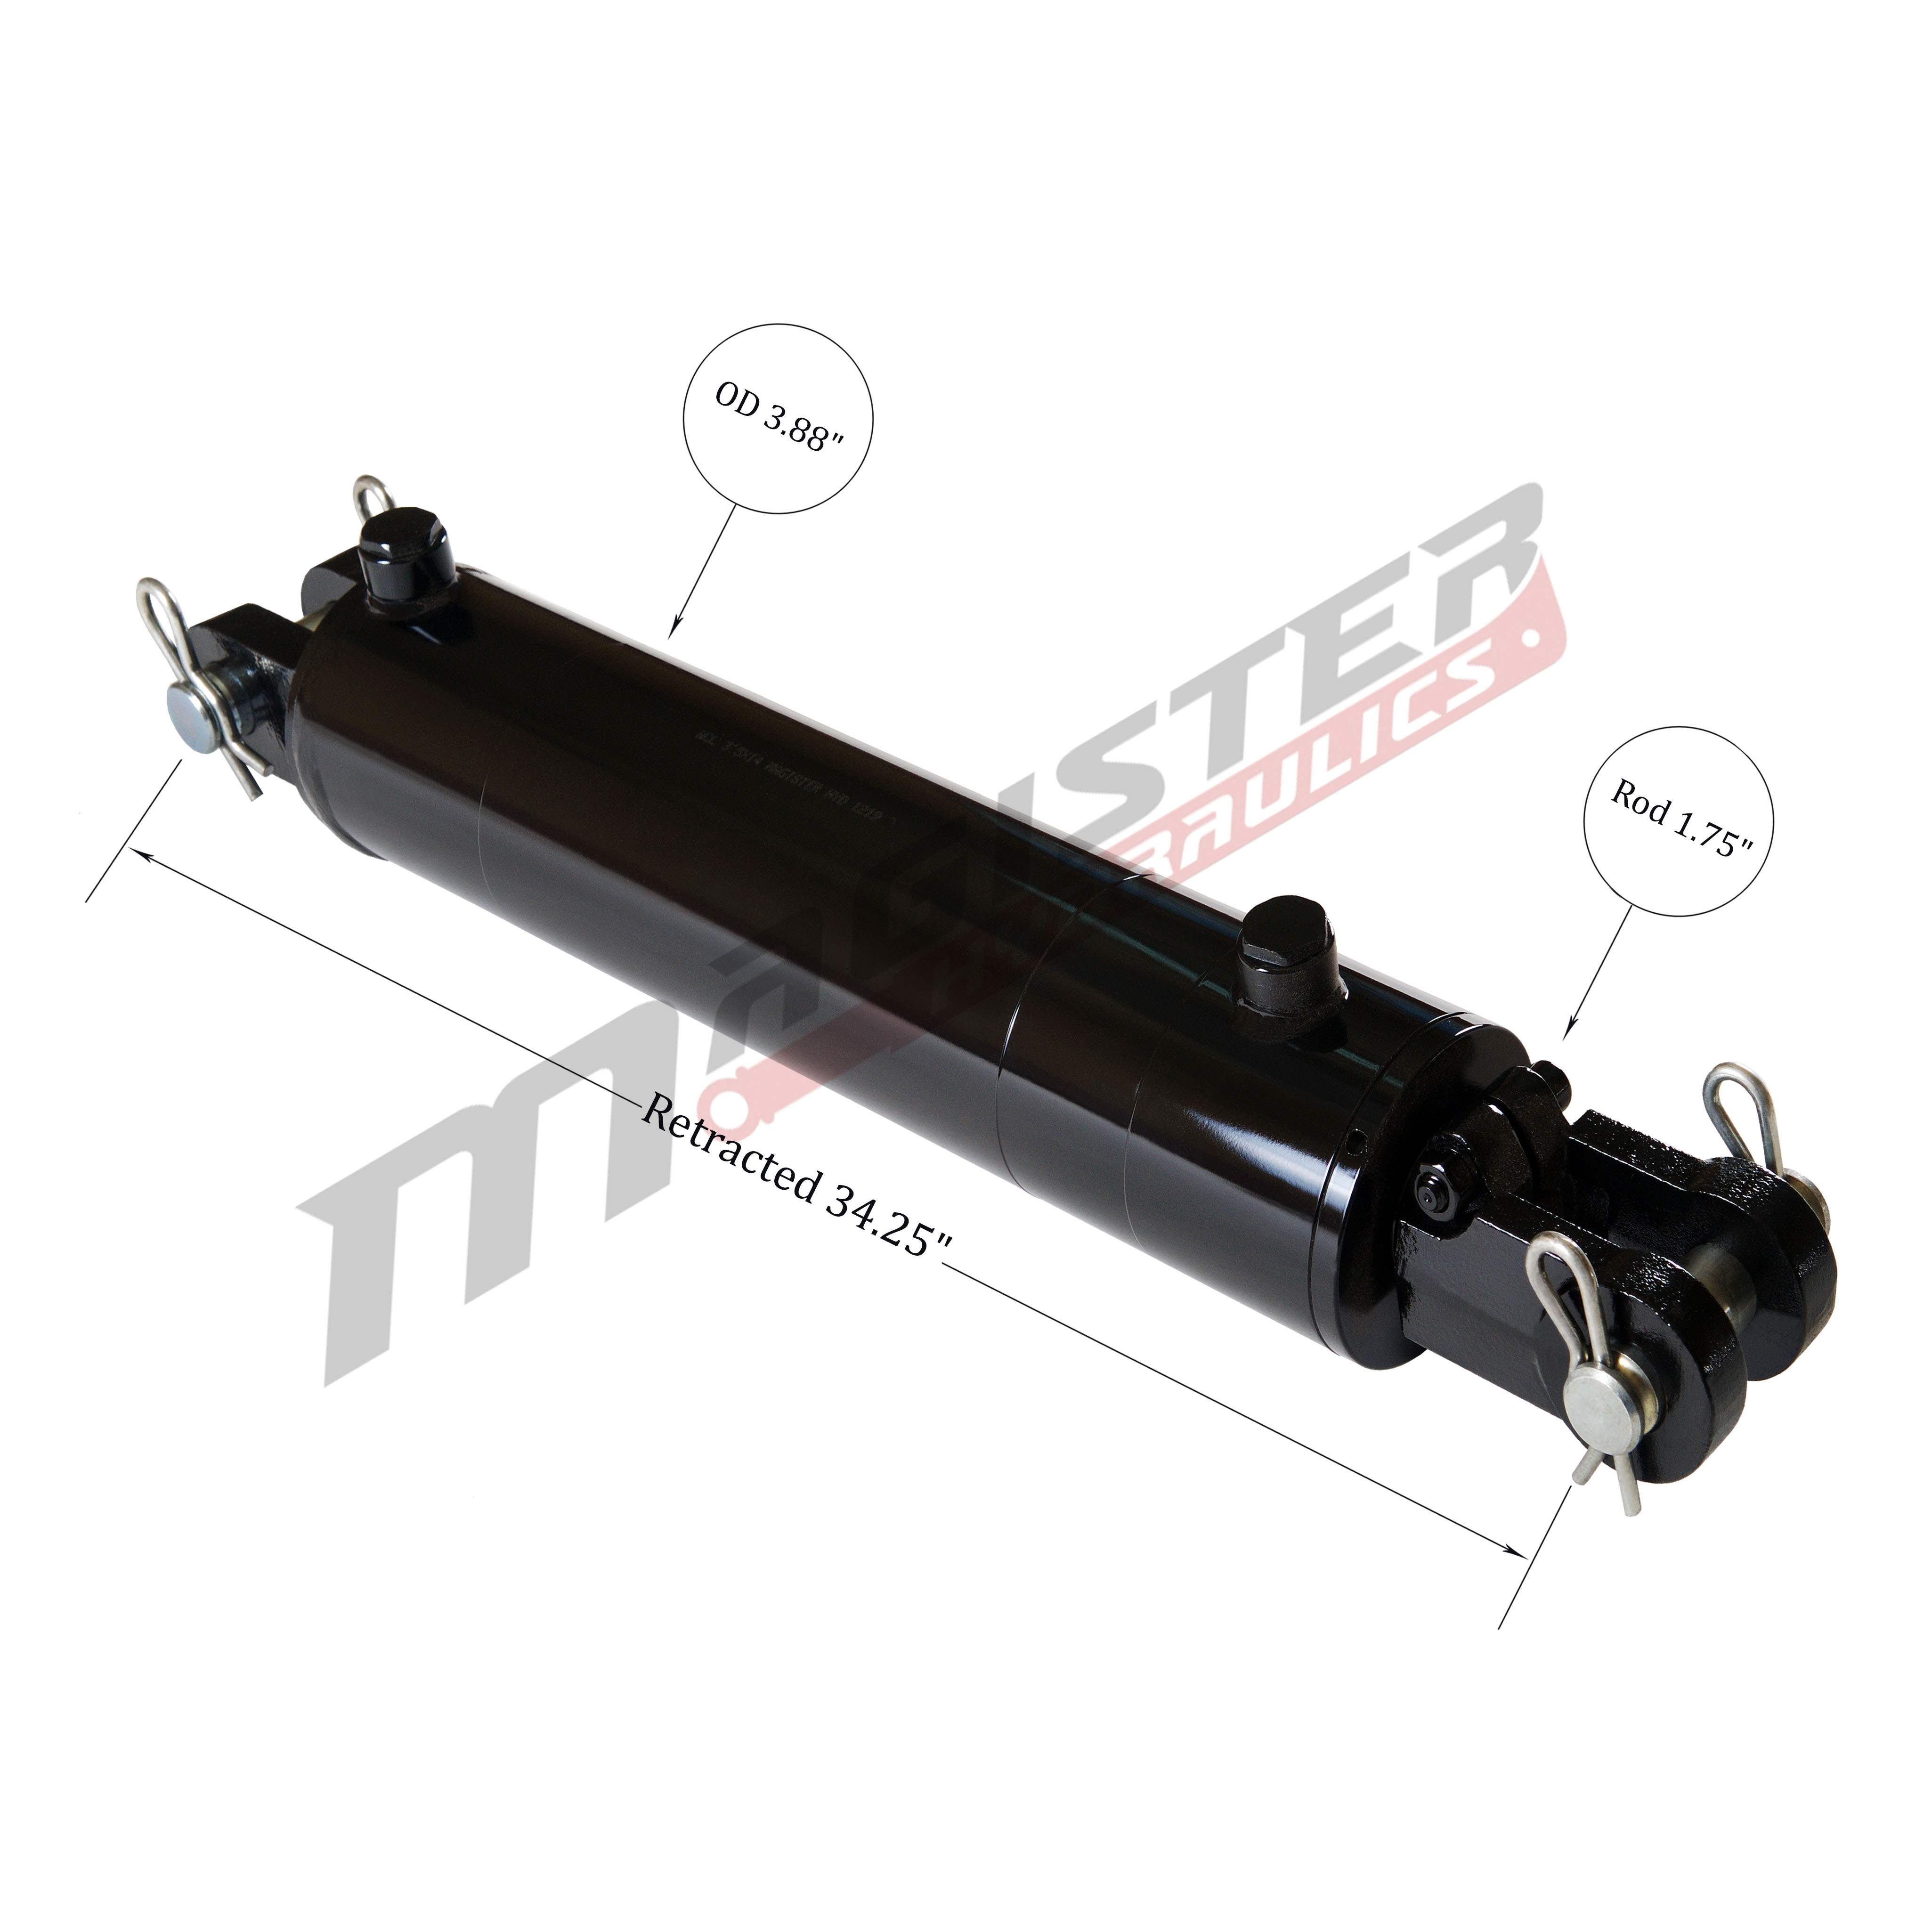 3.5 bore x 24 stroke hydraulic cylinder, welded clevis double acting cylinder | Magister Hydraulics